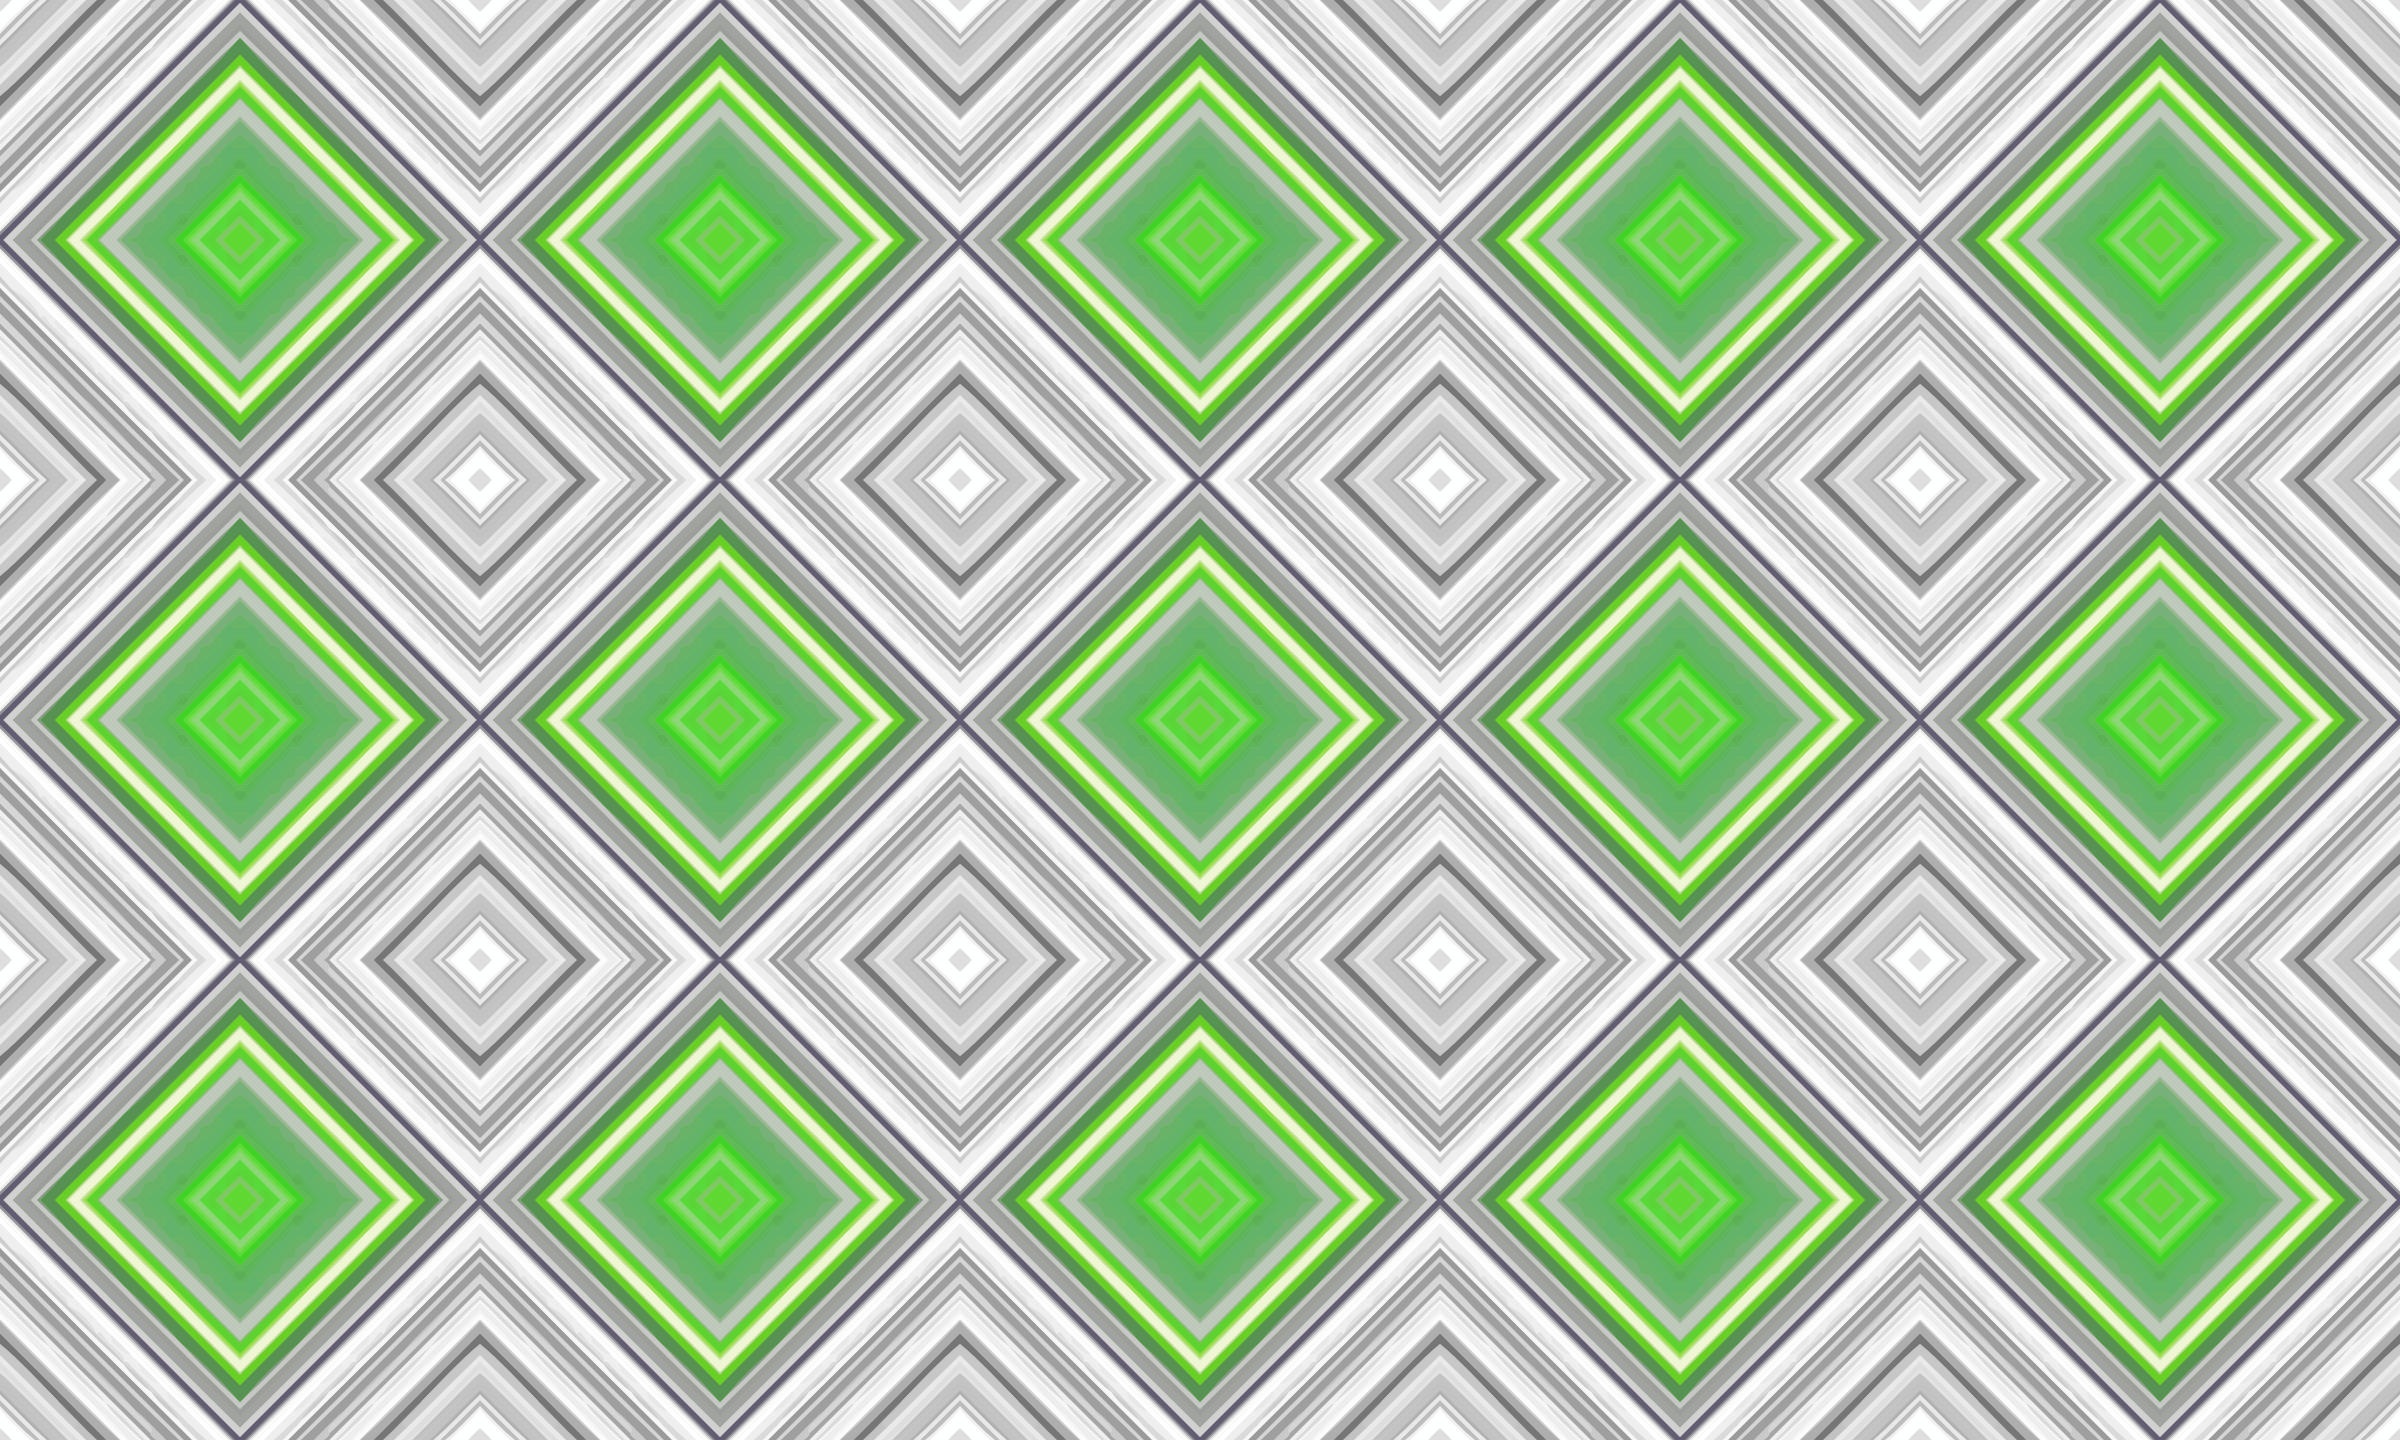 Background pattern 214 (colour 3) by Firkin